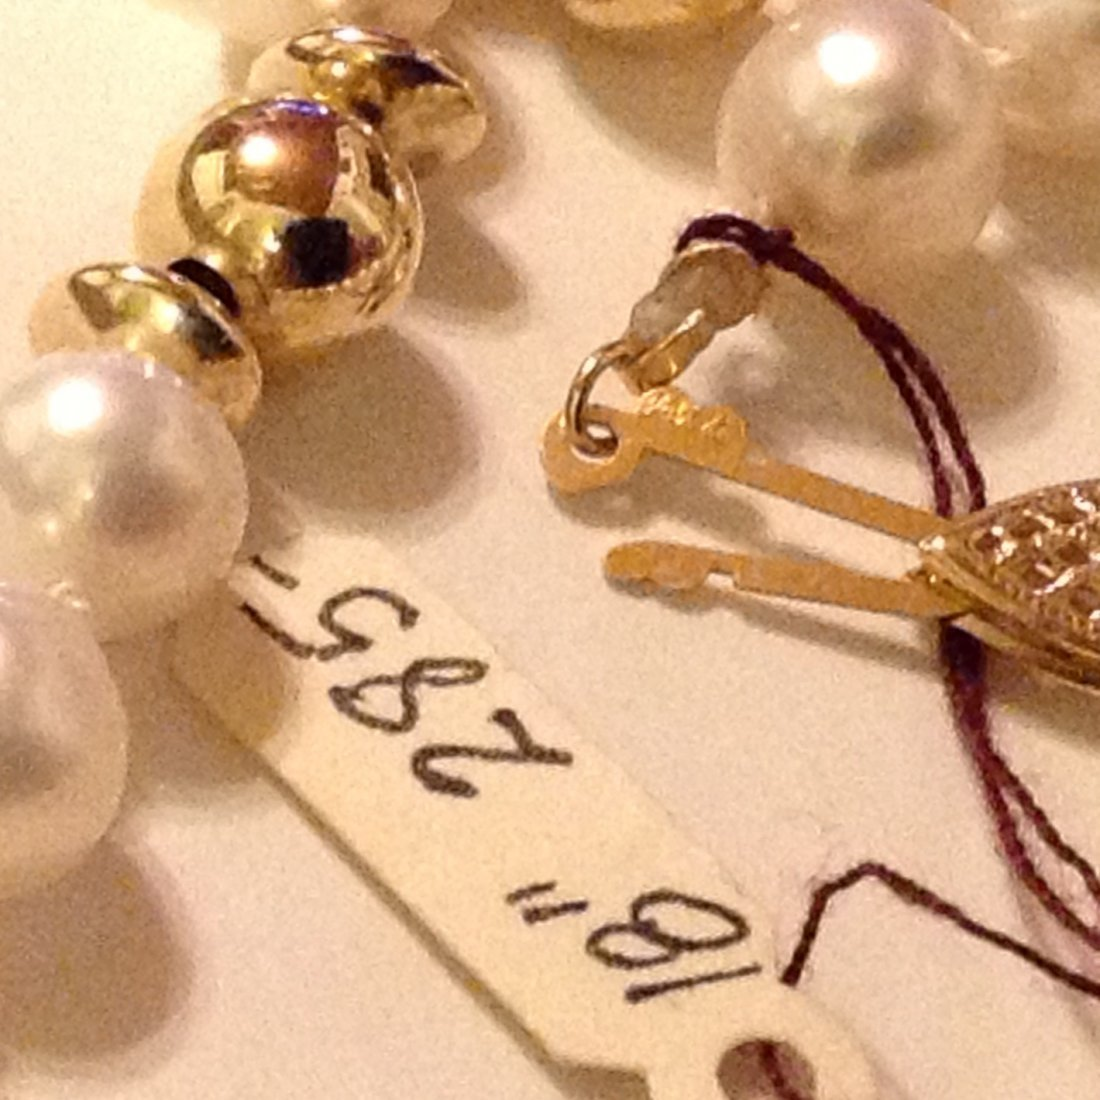 Elegant 14k gold clasp & accents white pearl necklace - 3